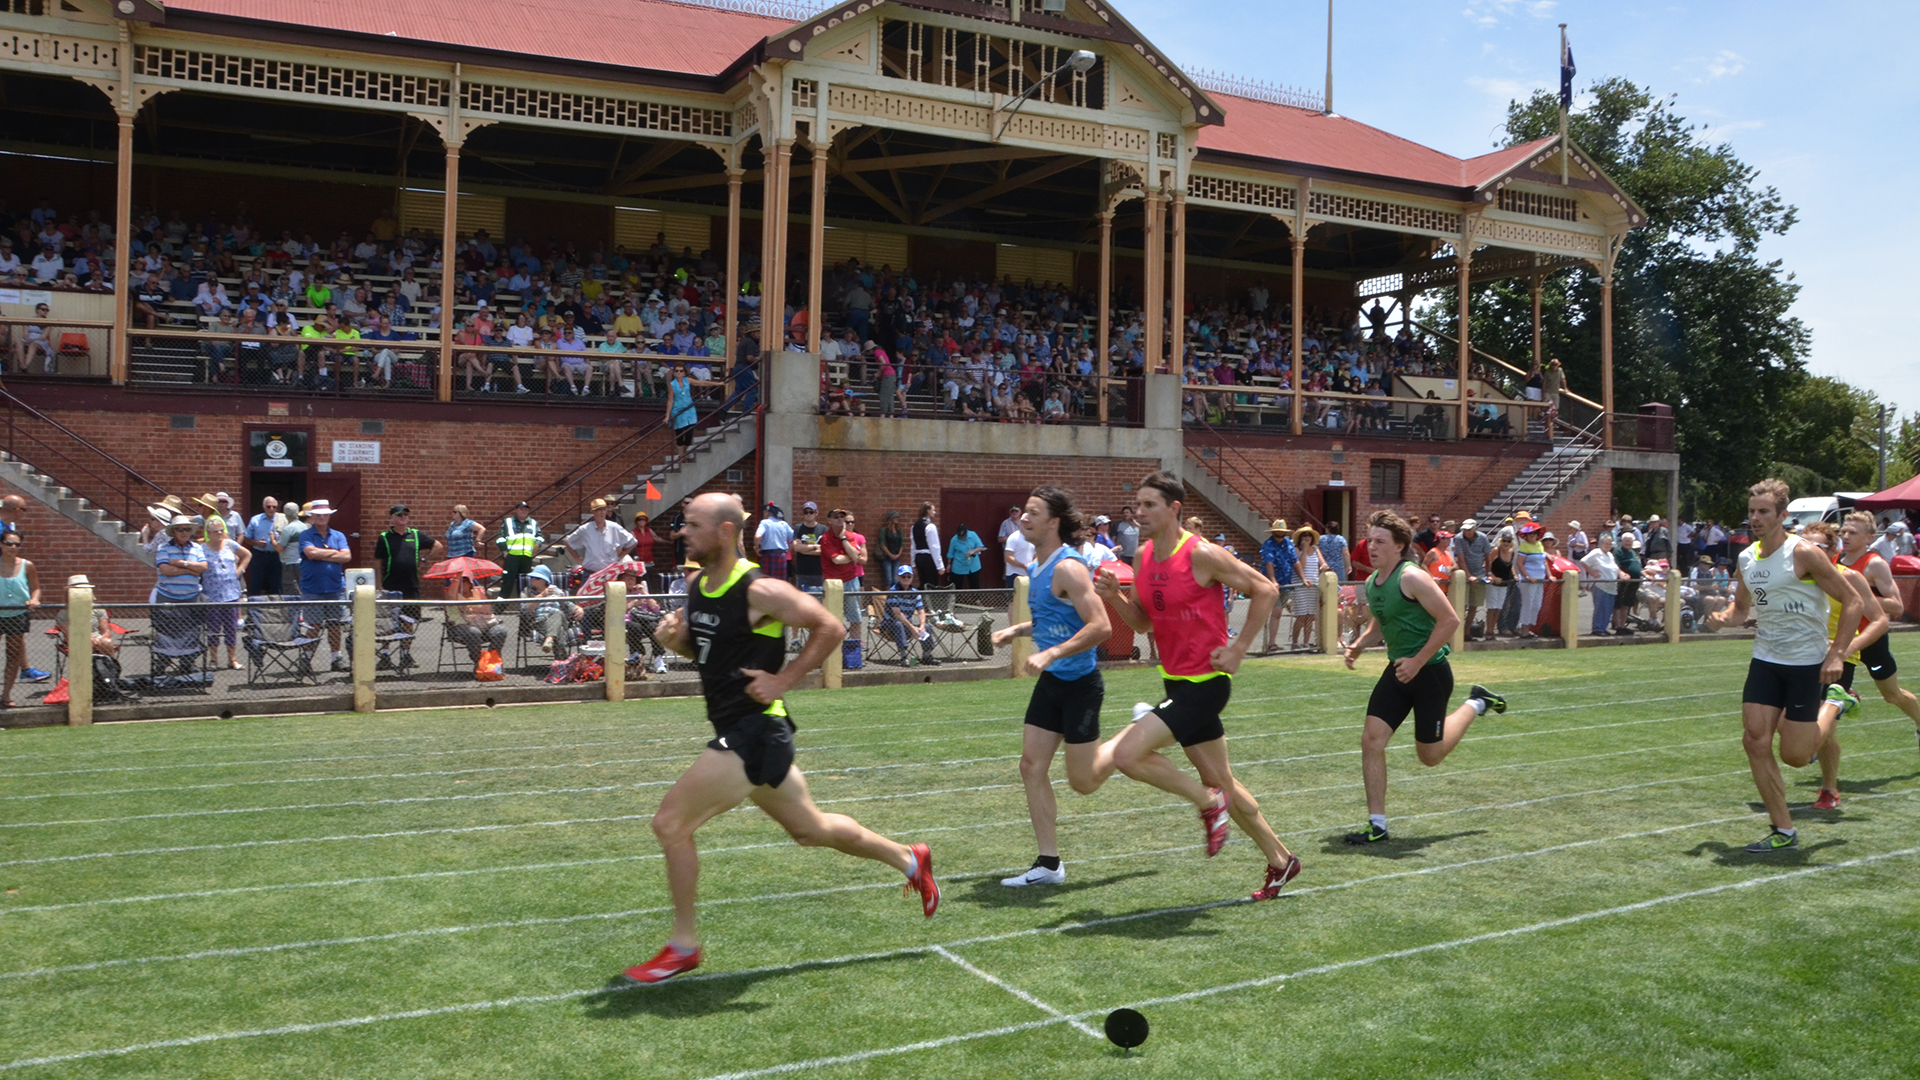 The Maryborough Highland Gathering is Australia's oldest continuous sporting event.